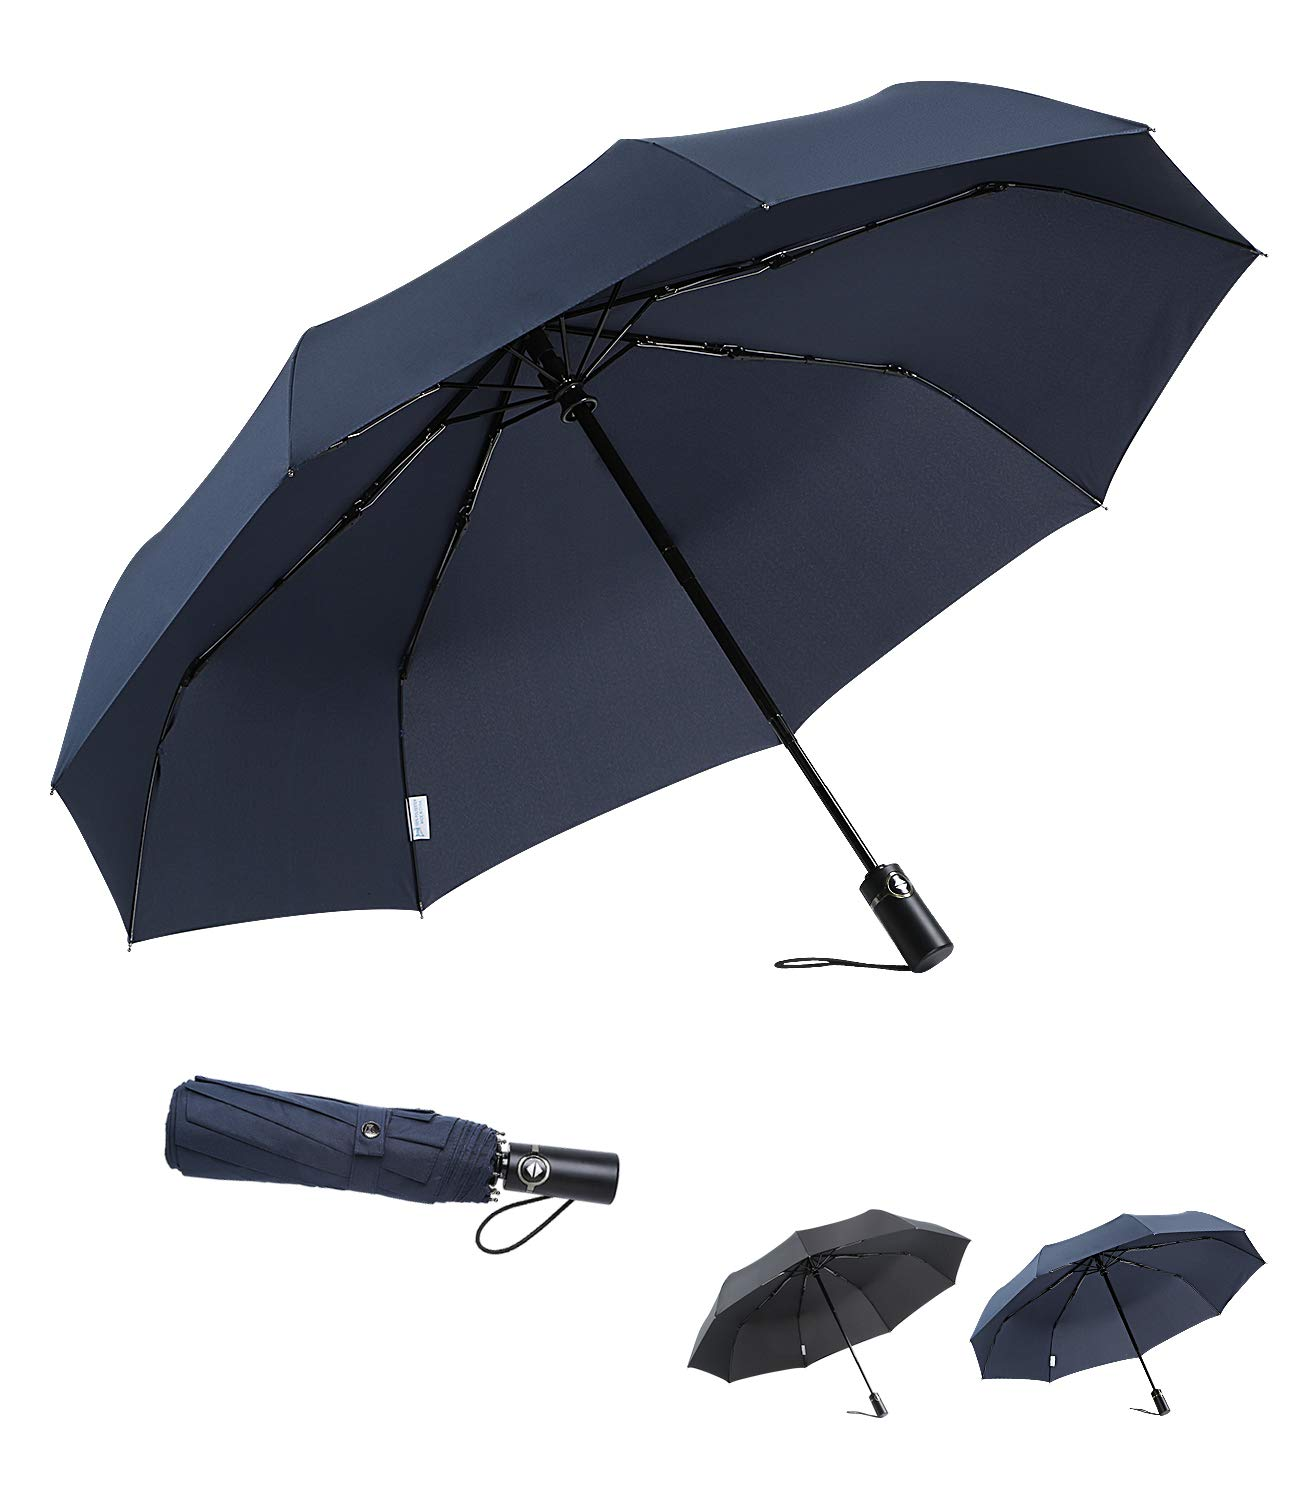 boy Travel Umbrella Windproof Compact Umbrella, Folding Umbrella Automatic Open Close, Upgraded 9 Ribs Reinforced Windproof Frame, Blue by boy